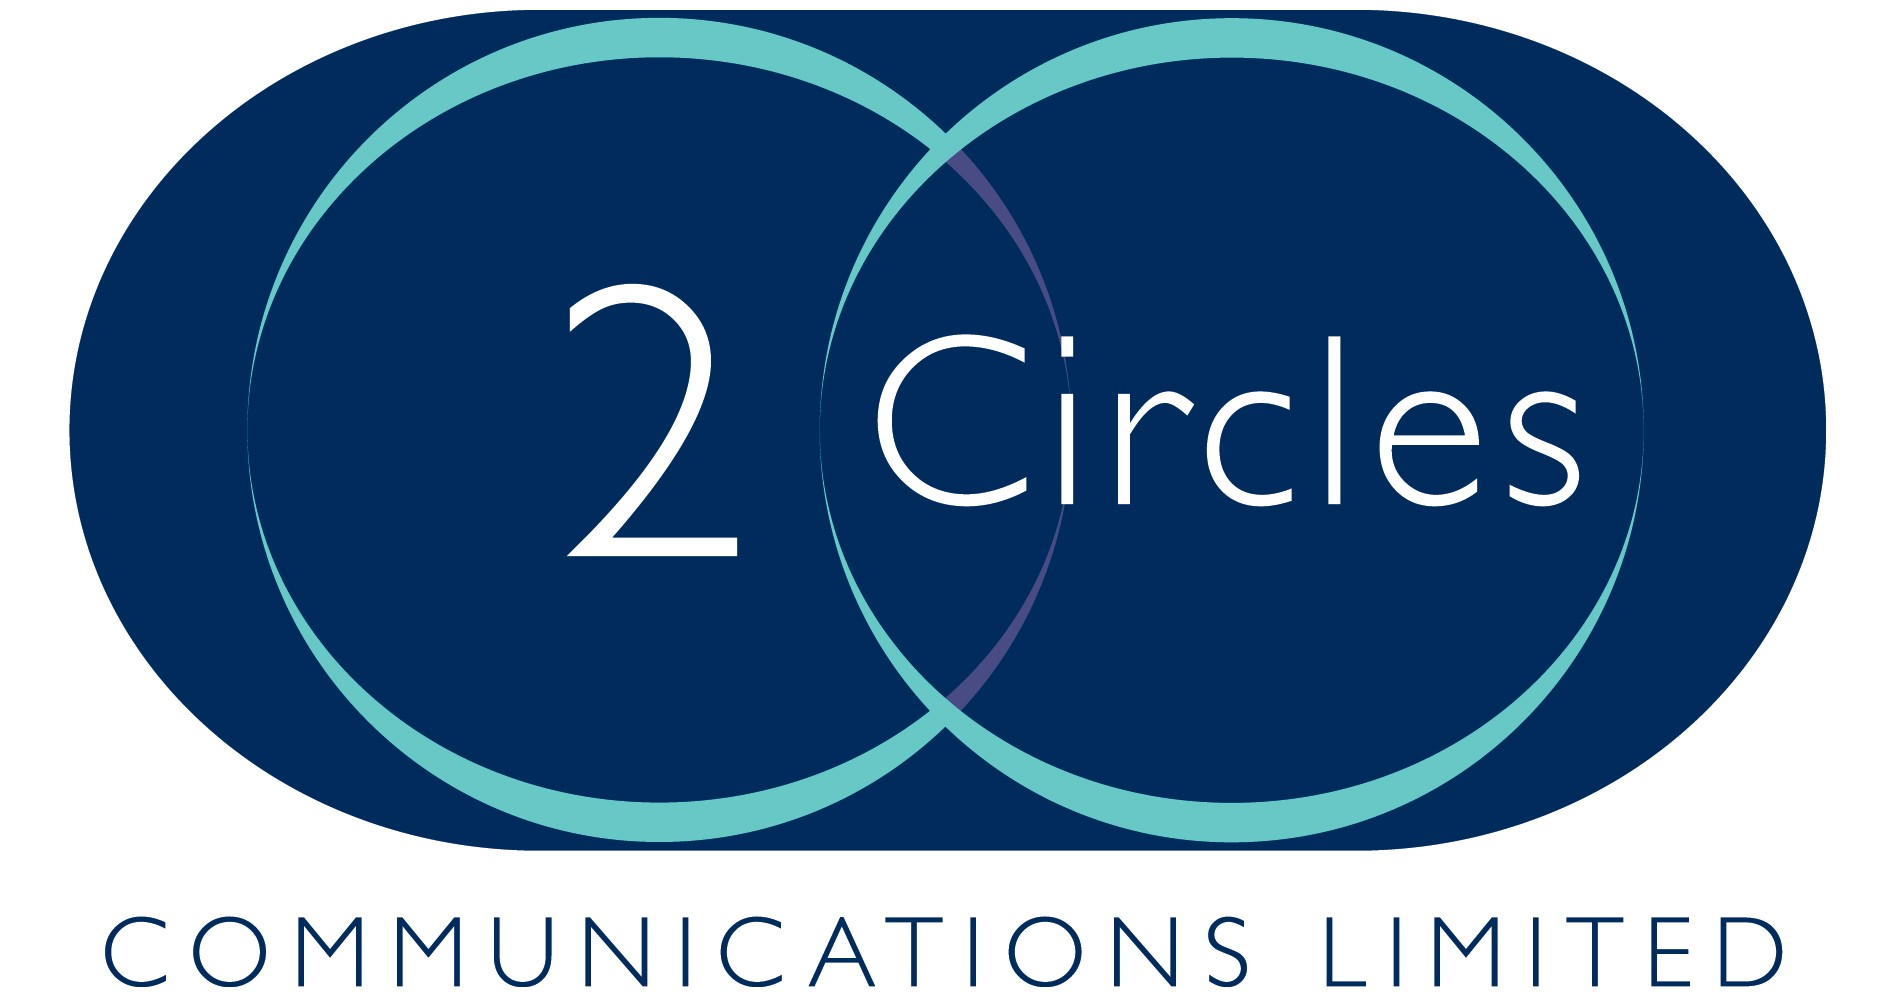 2 Circles Comms Ltd logo - March 2011